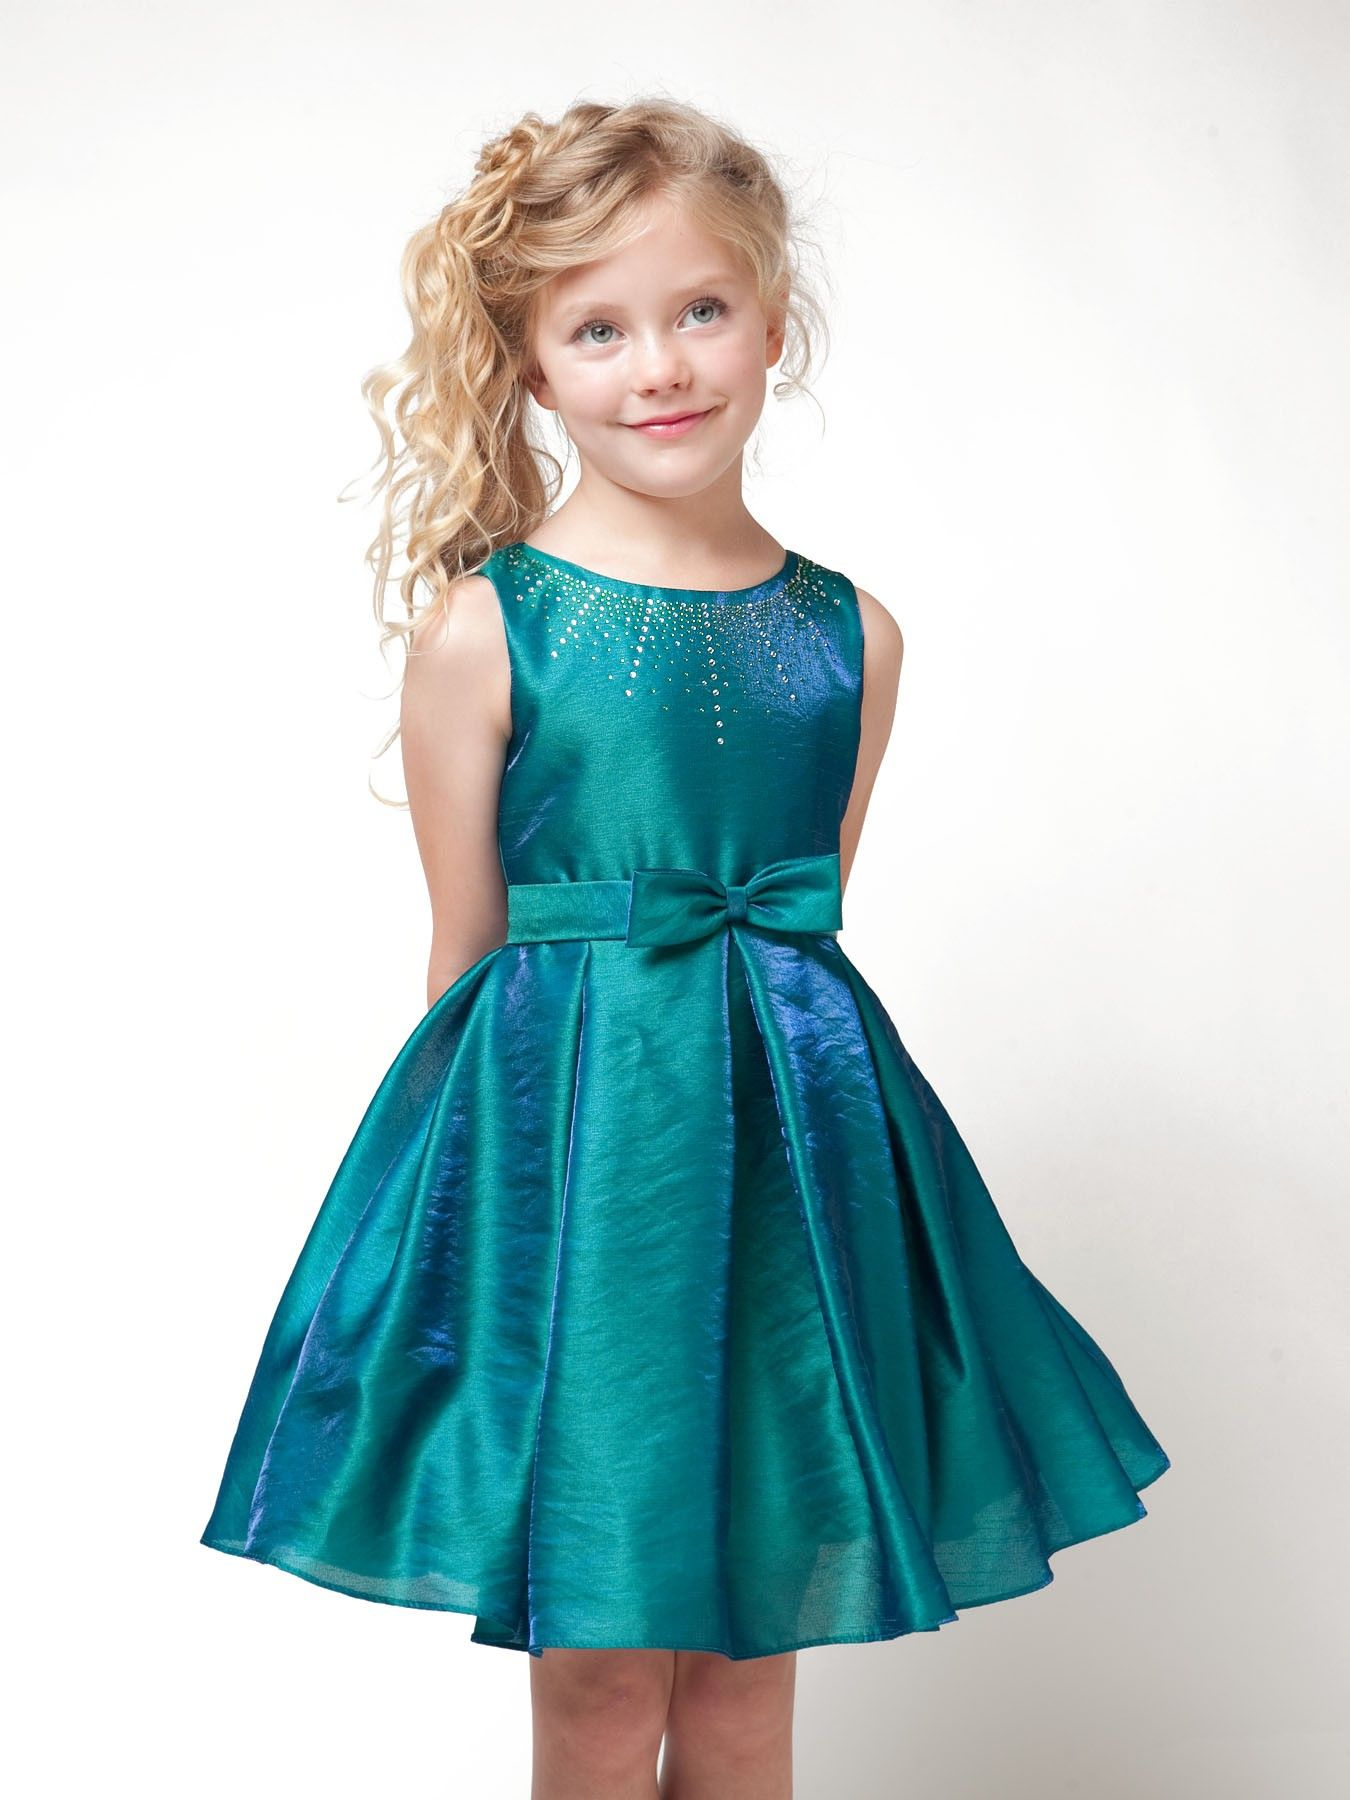 Island Blue Lovely Bow With Embellished Neckline Flower Dress Sizes Infant 12 In